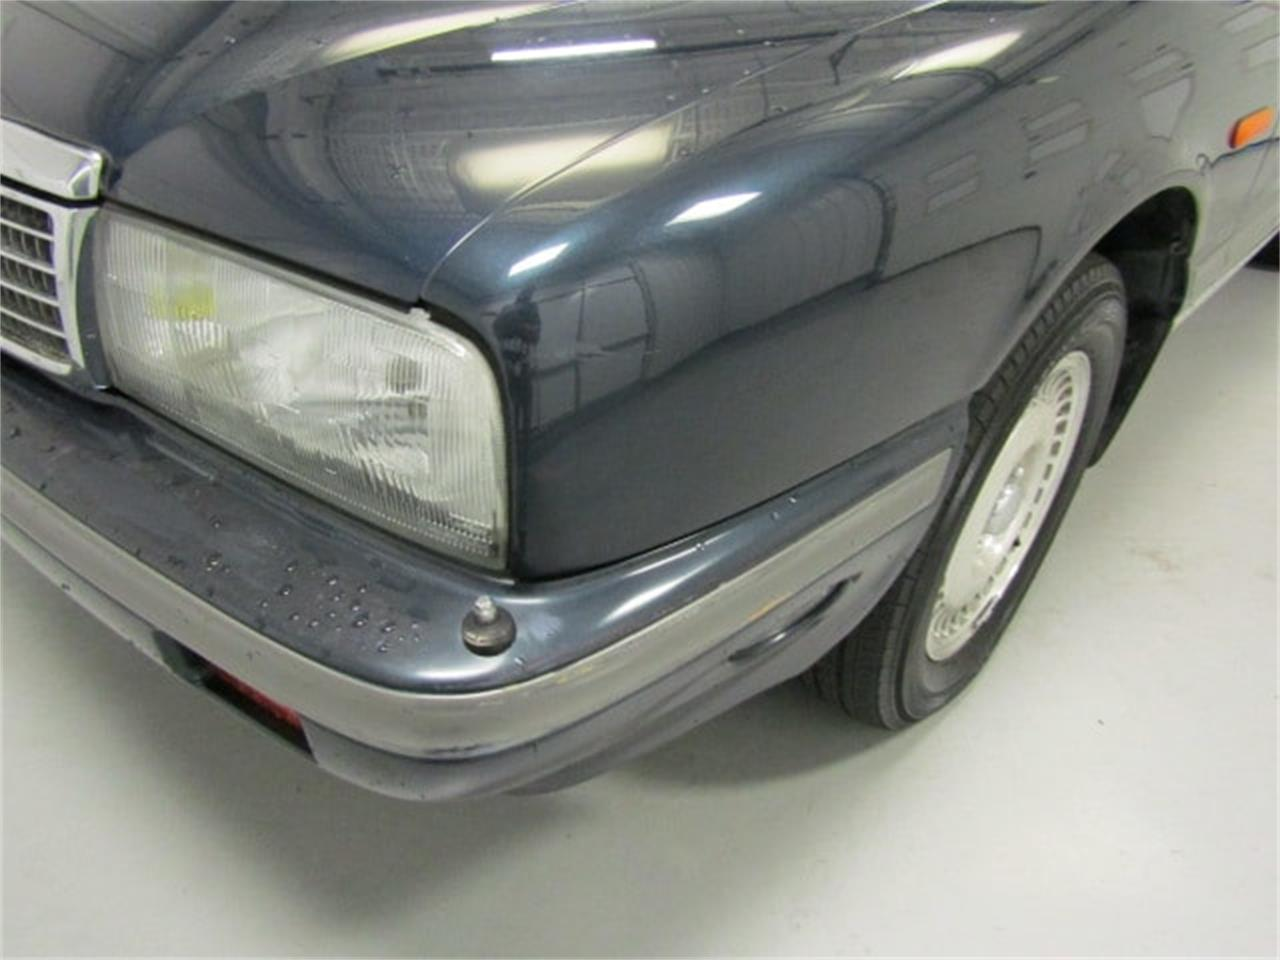 Large Picture of '91 Nissan Cima - $5,959.00 Offered by Duncan Imports & Classic Cars - JZ2X